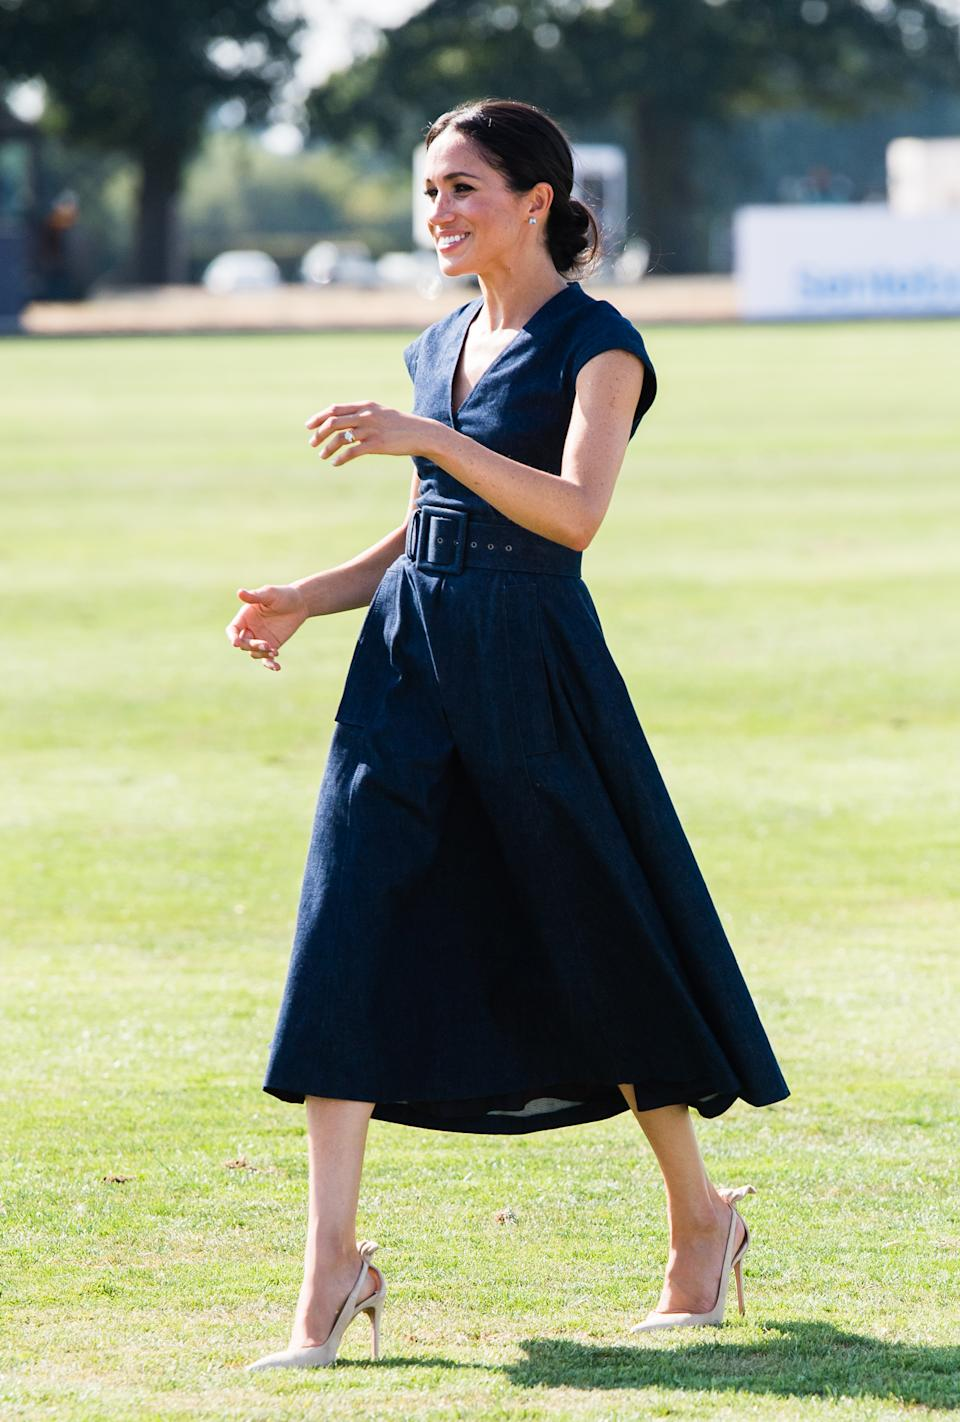 Meghan Markle wears Aquazzura heels at the Sentebale Polo event in 2018 [Photo via Getty Images]